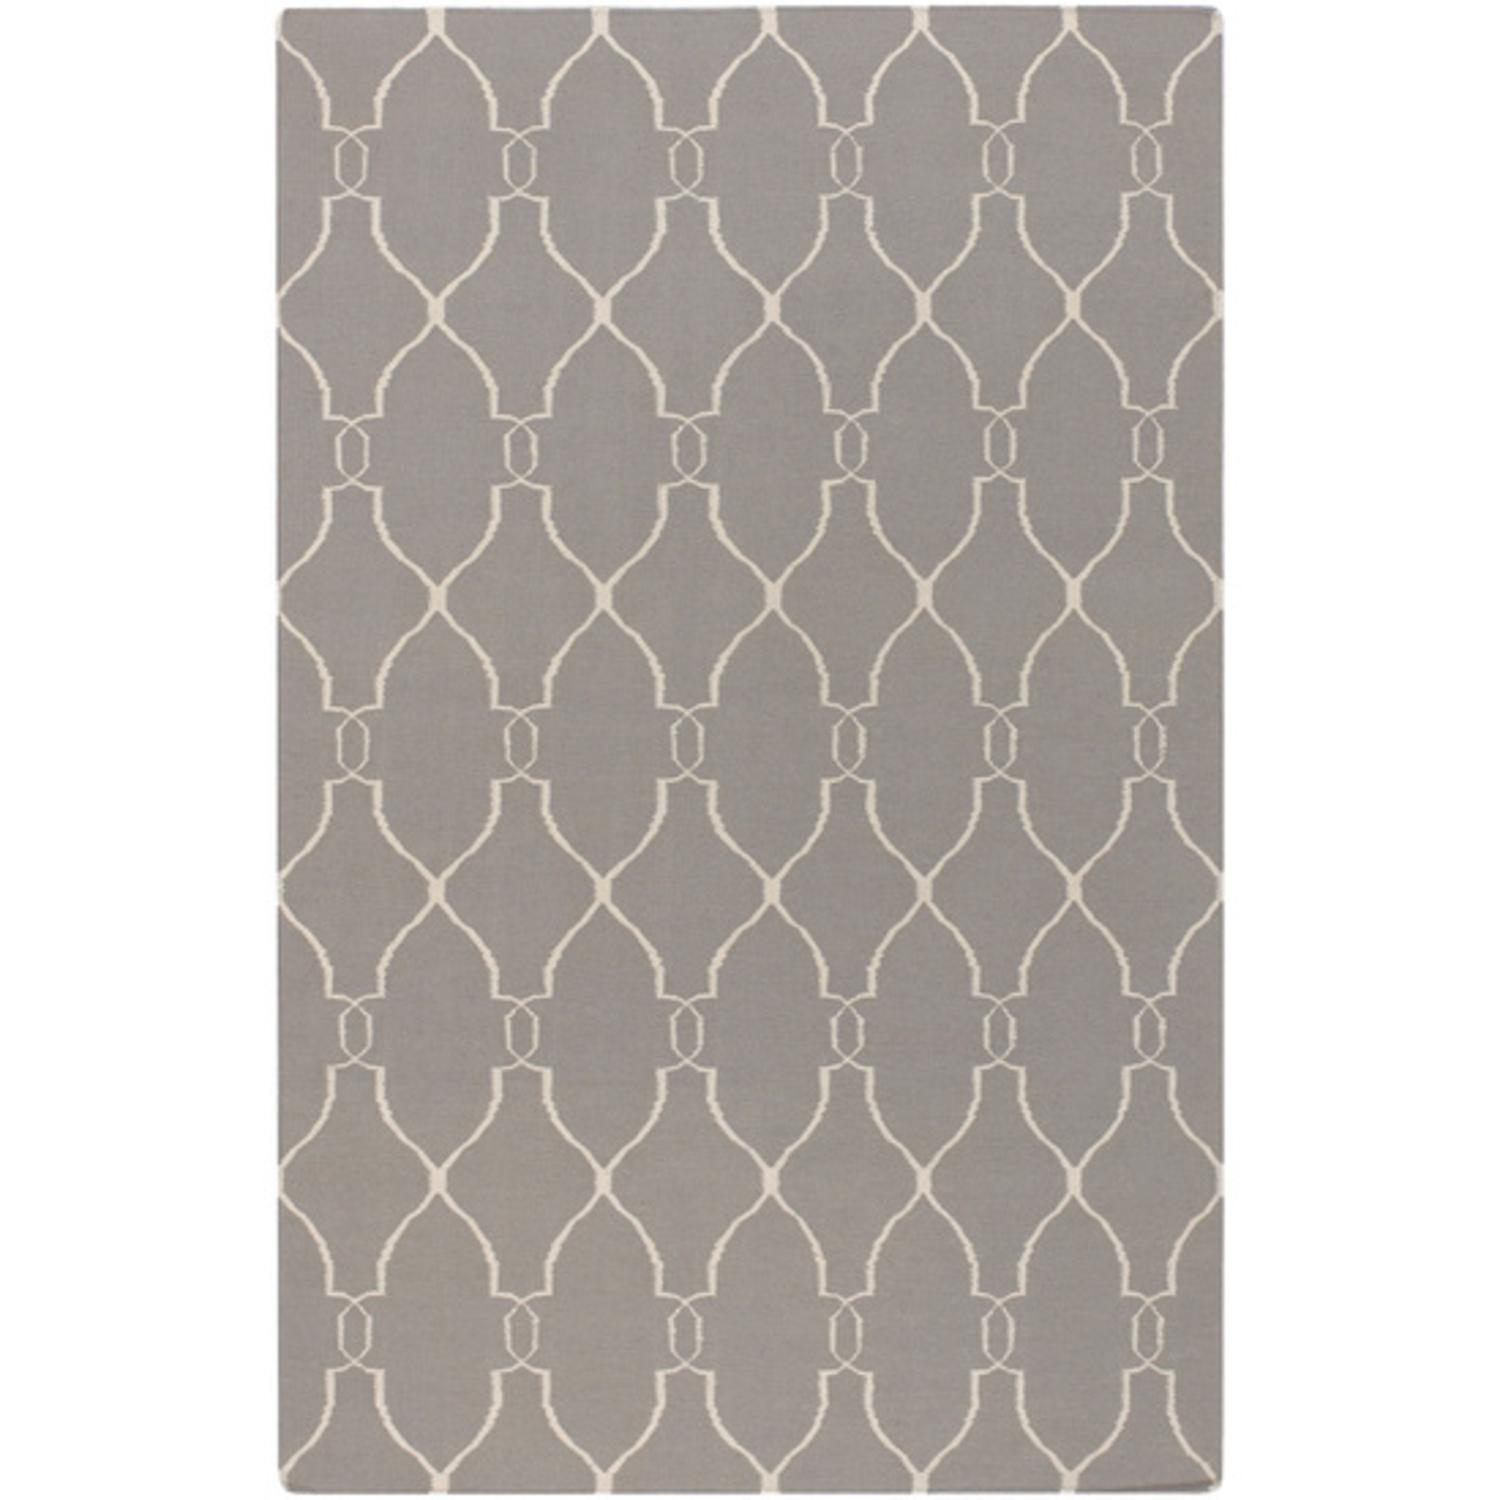 5' x 8' Open Swirled Lavender Gray and Ivory Hand Woven Wool Area Throw Rug